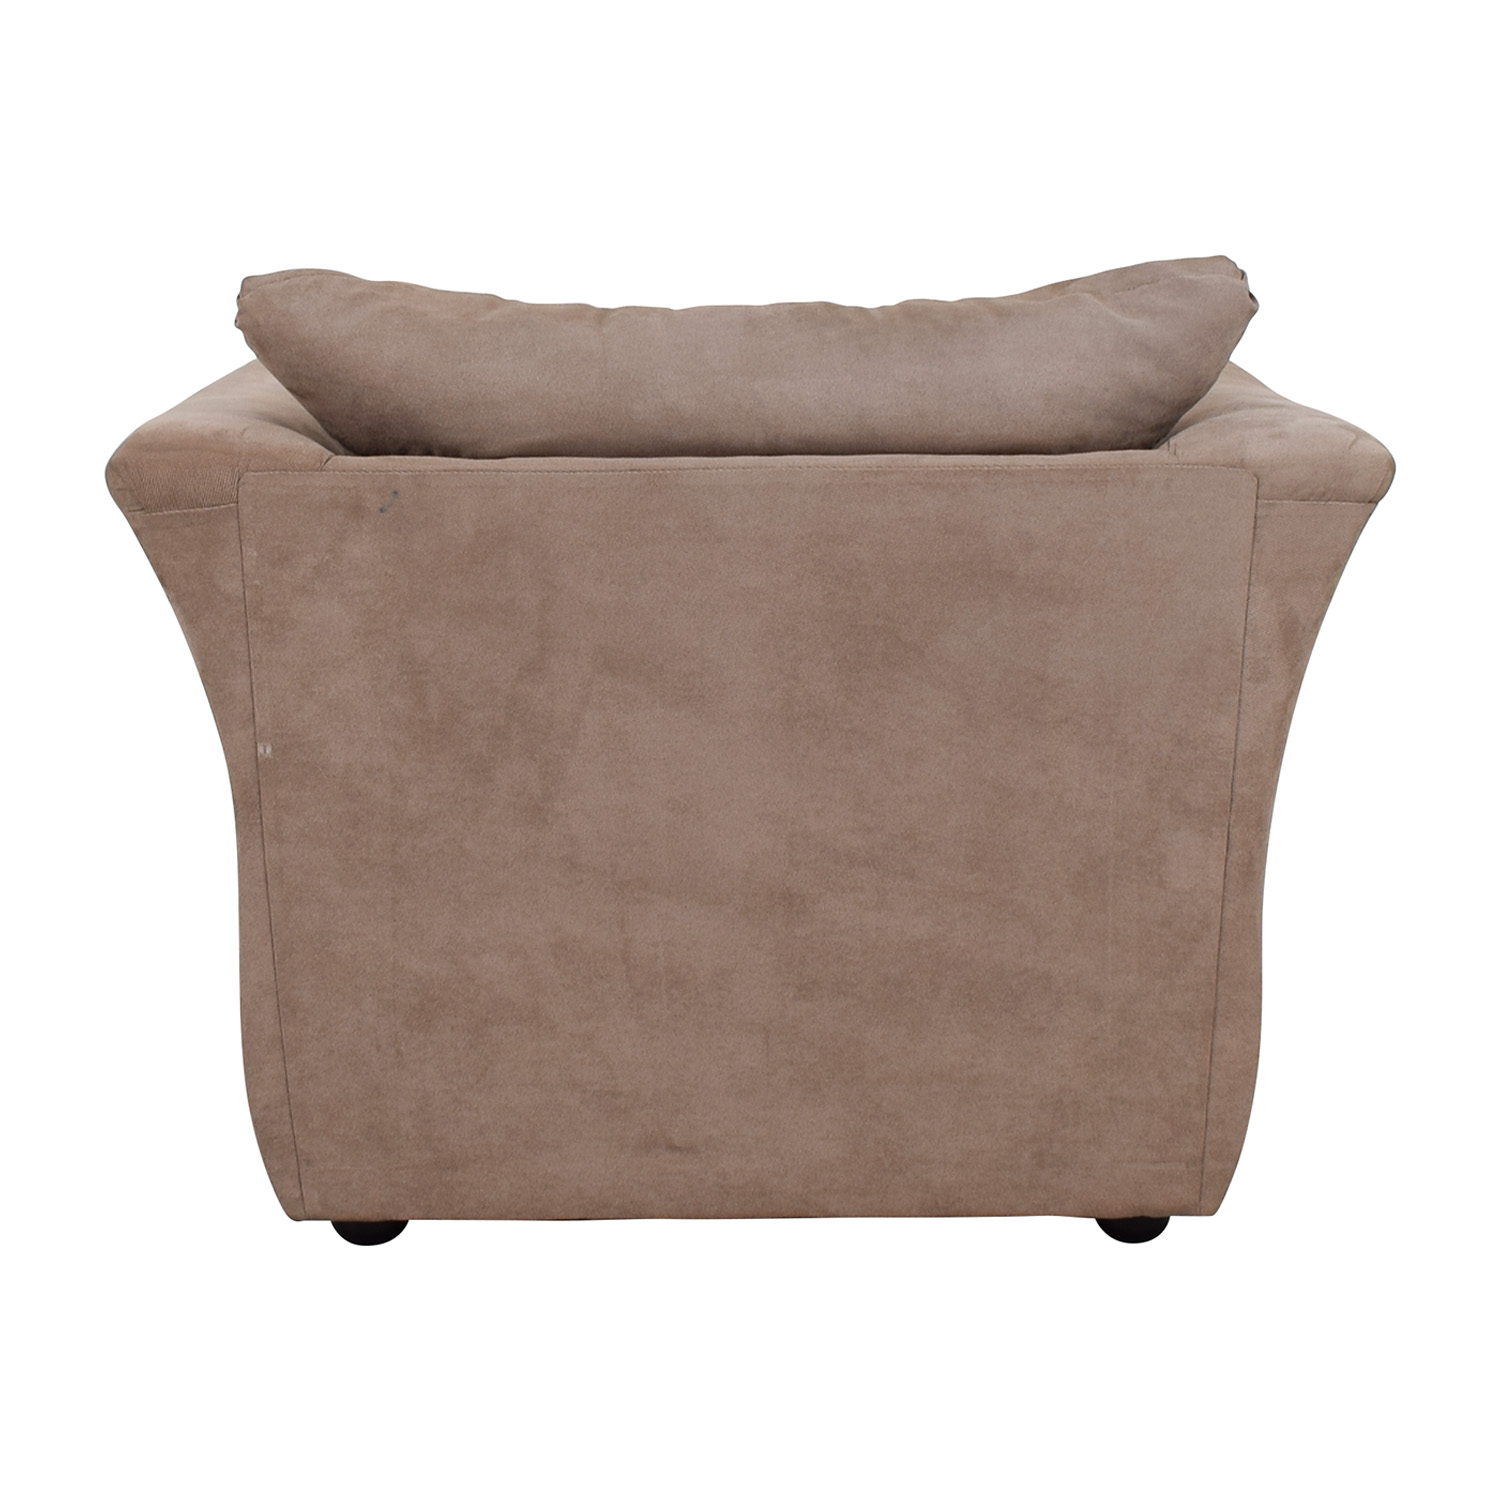 buy Jennifer Convertibles Pink Sofa Chair & Ottoman Jennifer Convertibles Sofas